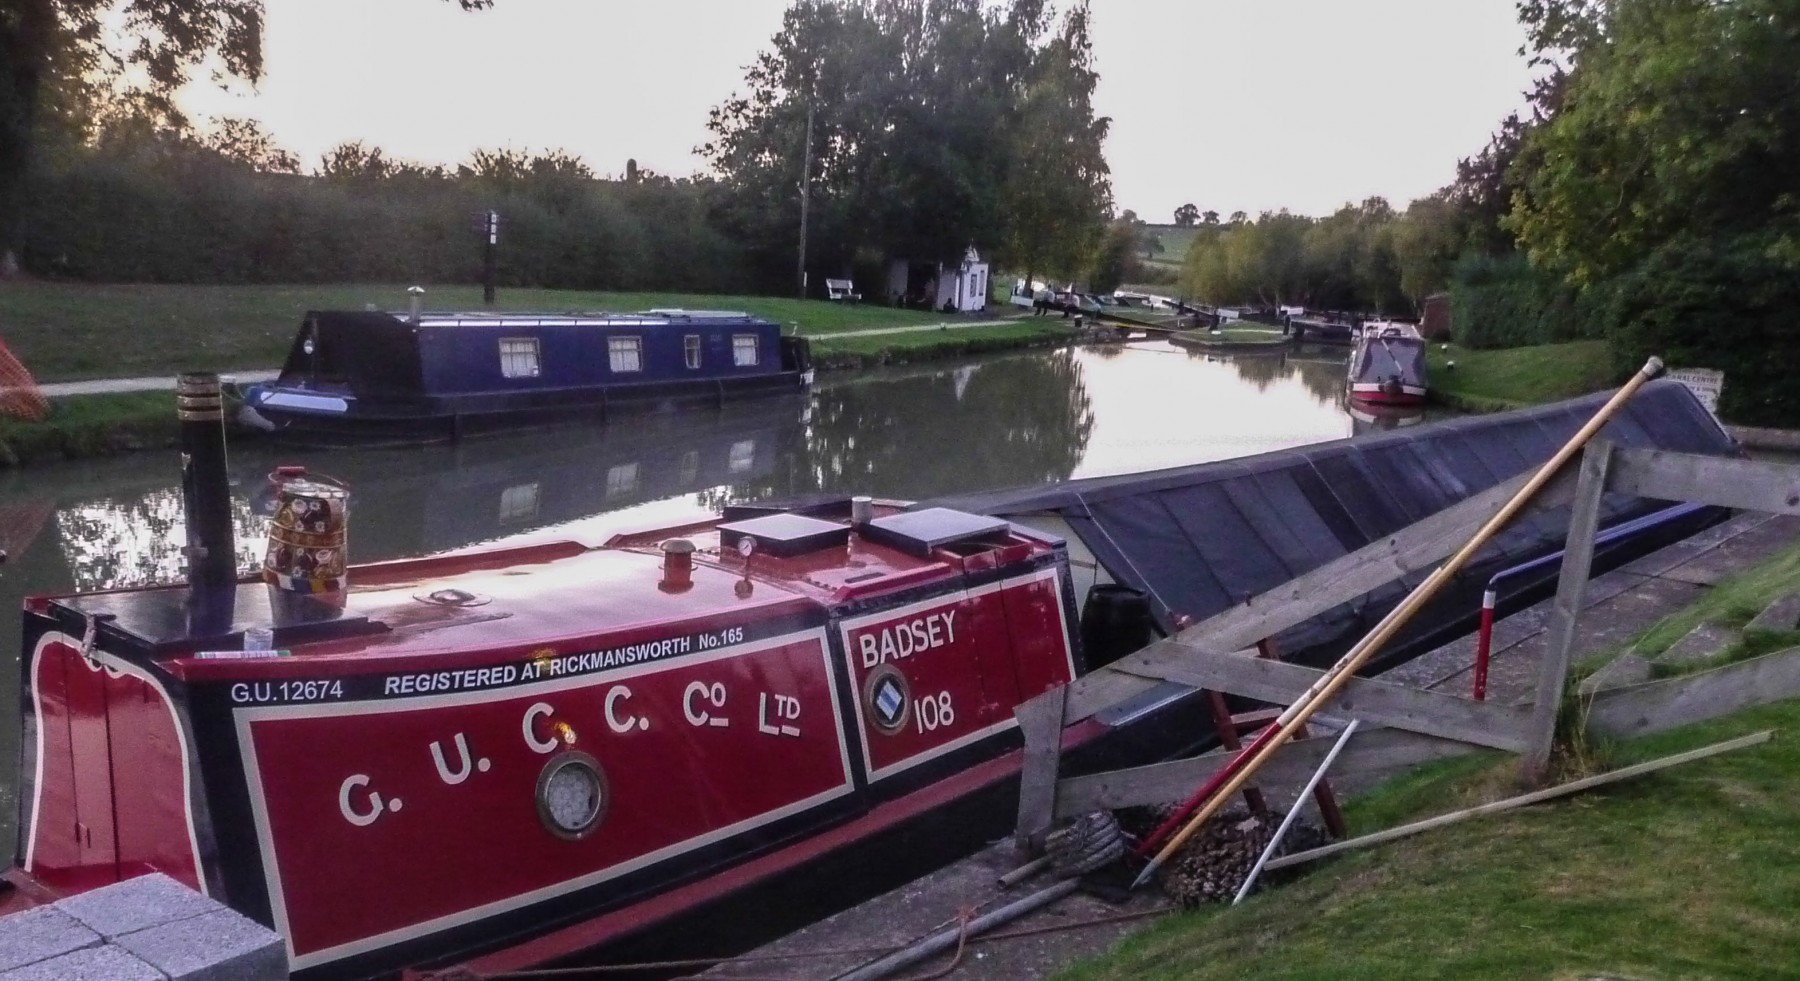 Badsey narrowboat